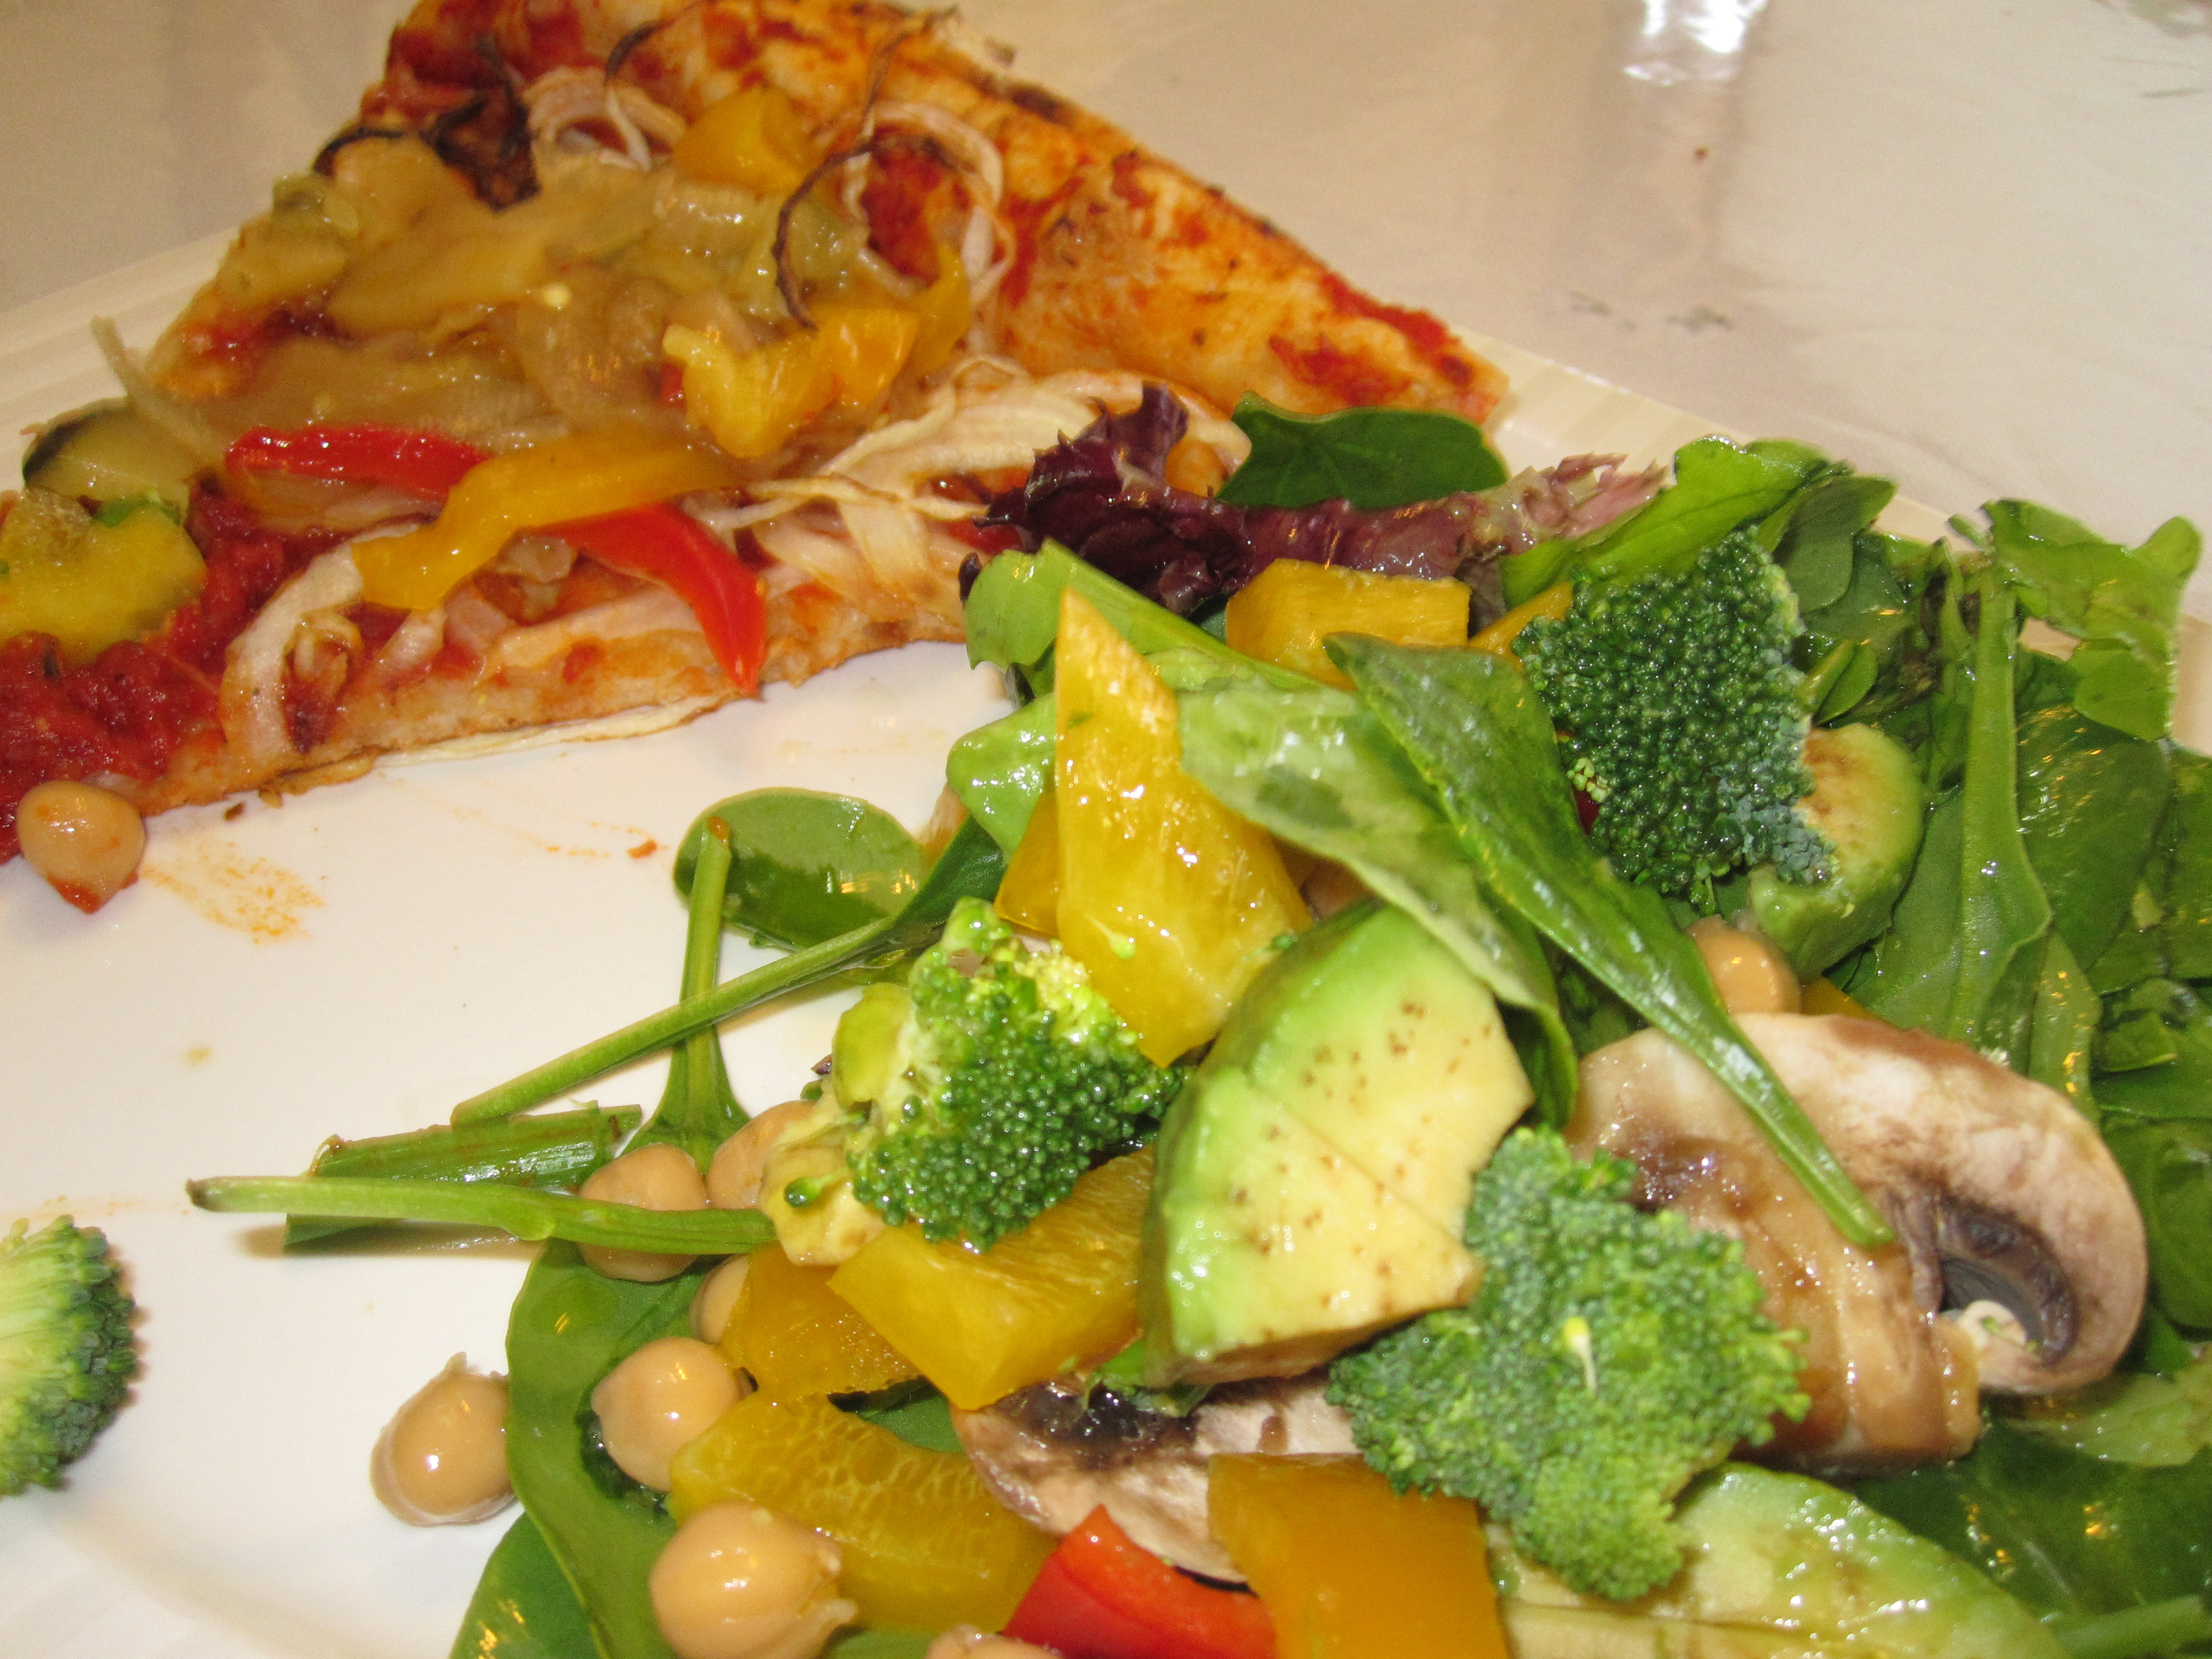 Onion Pizza & Salad Lunch